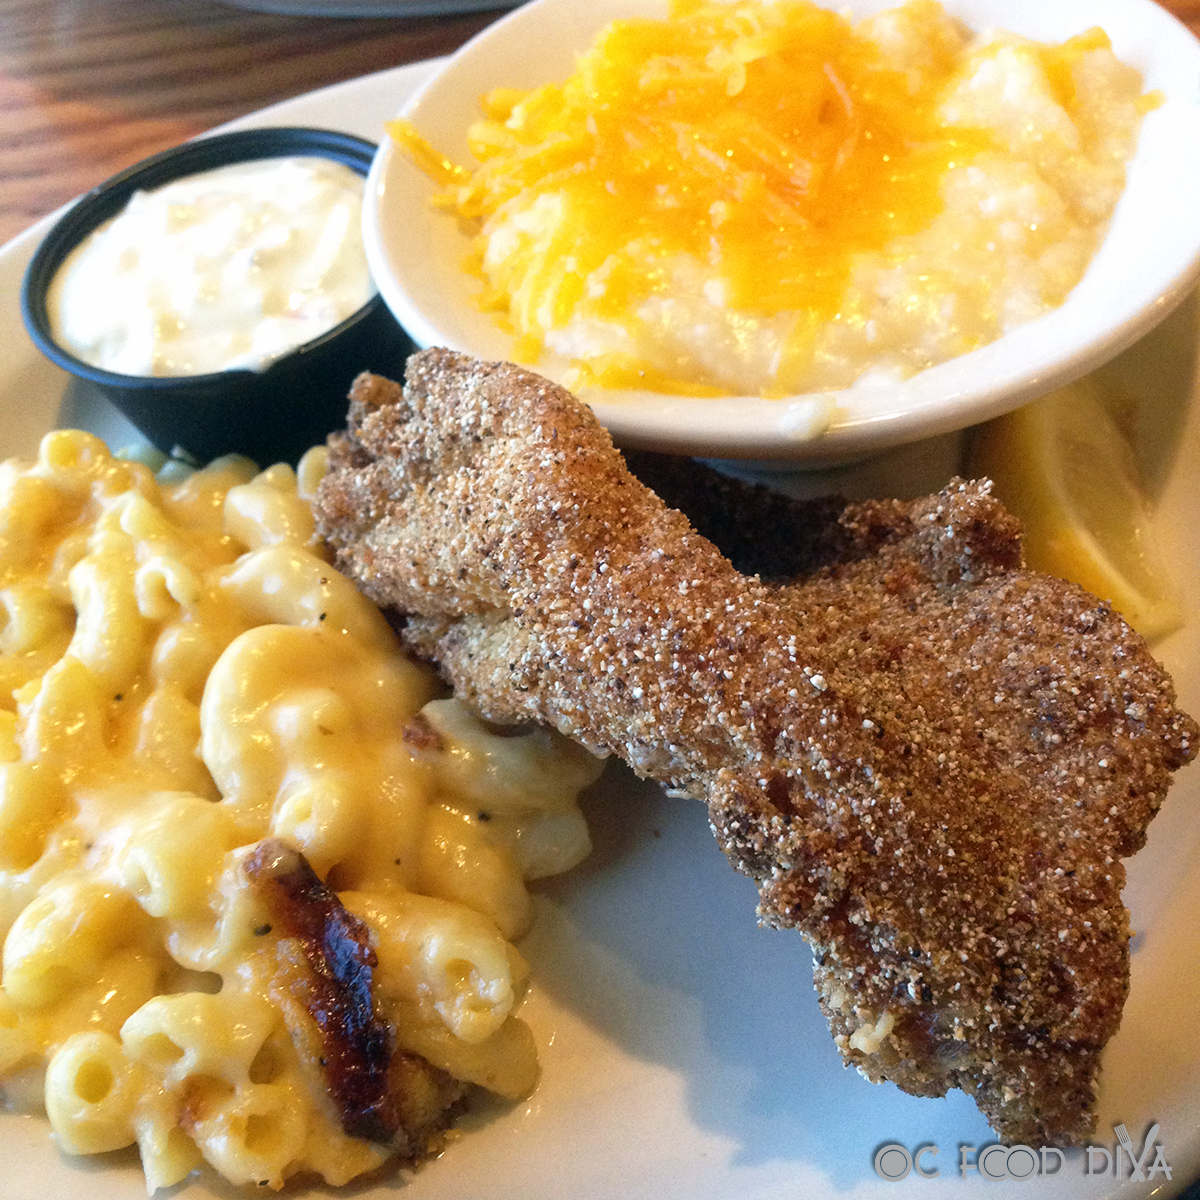 u s farm raised catfish country dinner plate is served with two country vegetables n sides plus complimentary buttermilk biscuits or corn muffins with